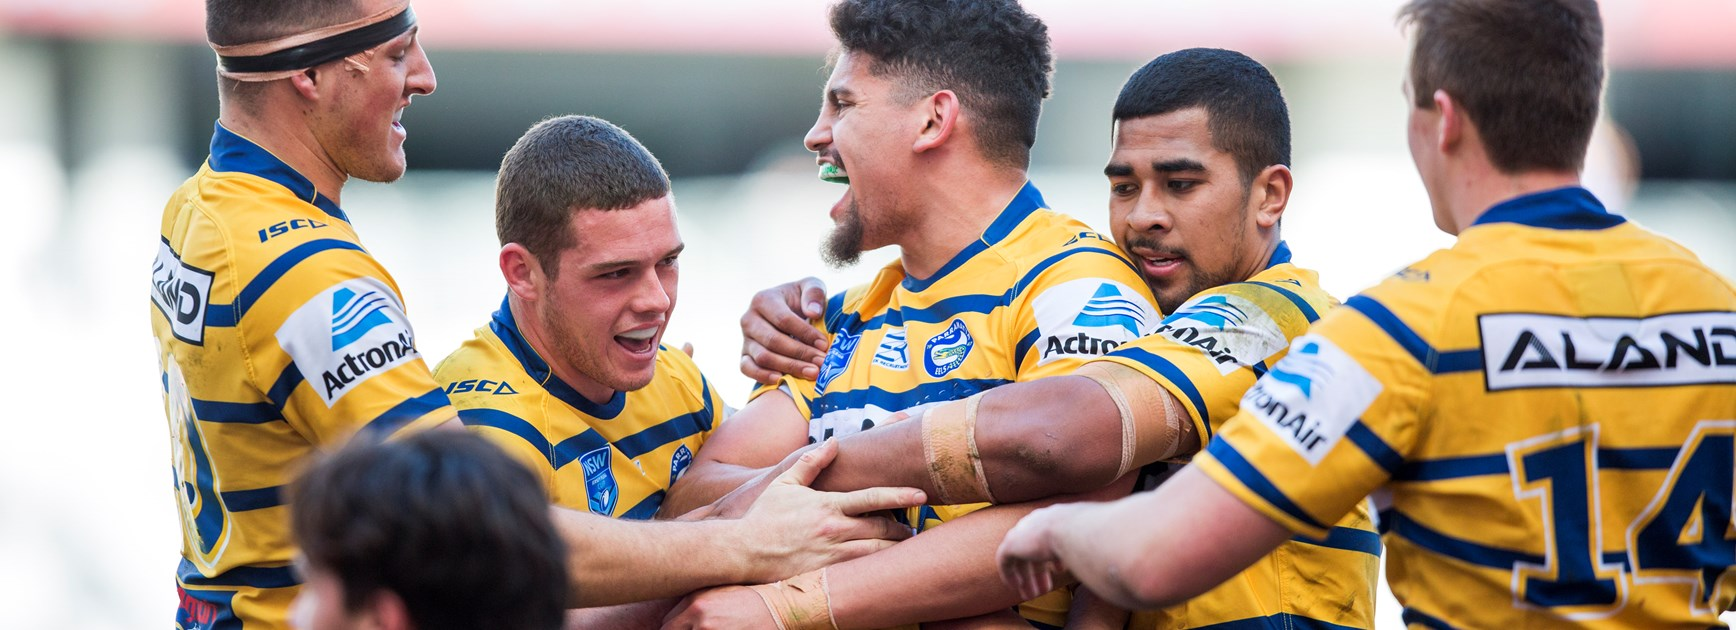 Eels Jersey Flegg dominate Sea Eagles in Round 22